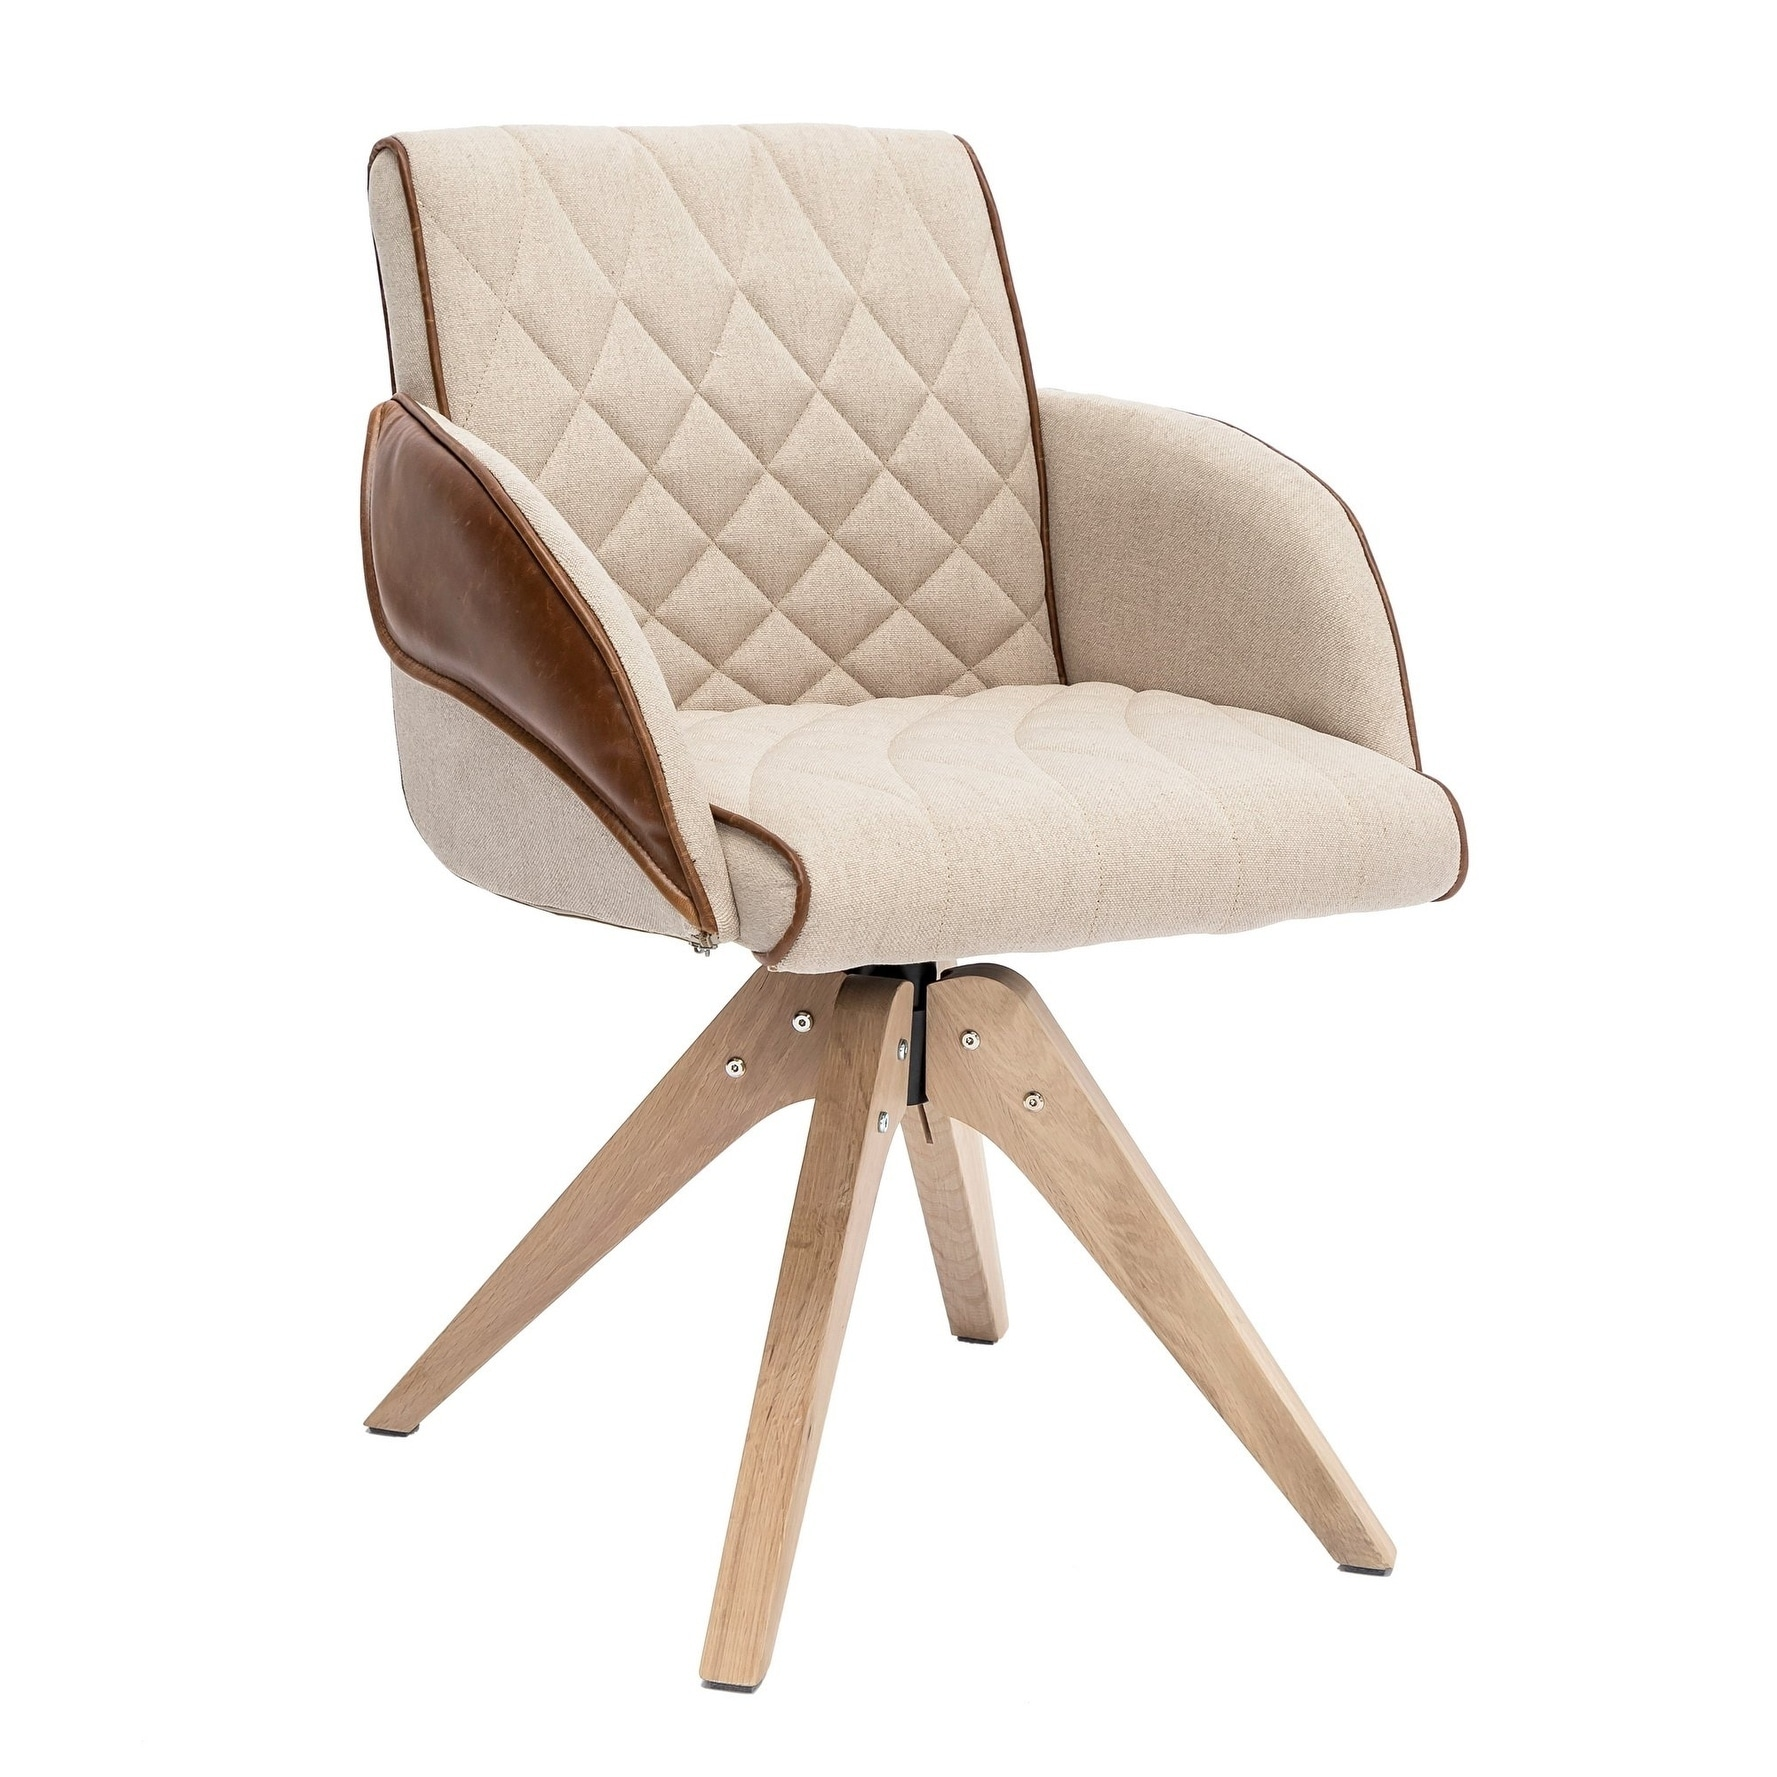 Shop Black Friday Deals On Swivel Accent Chair Beige Overstock 30566973